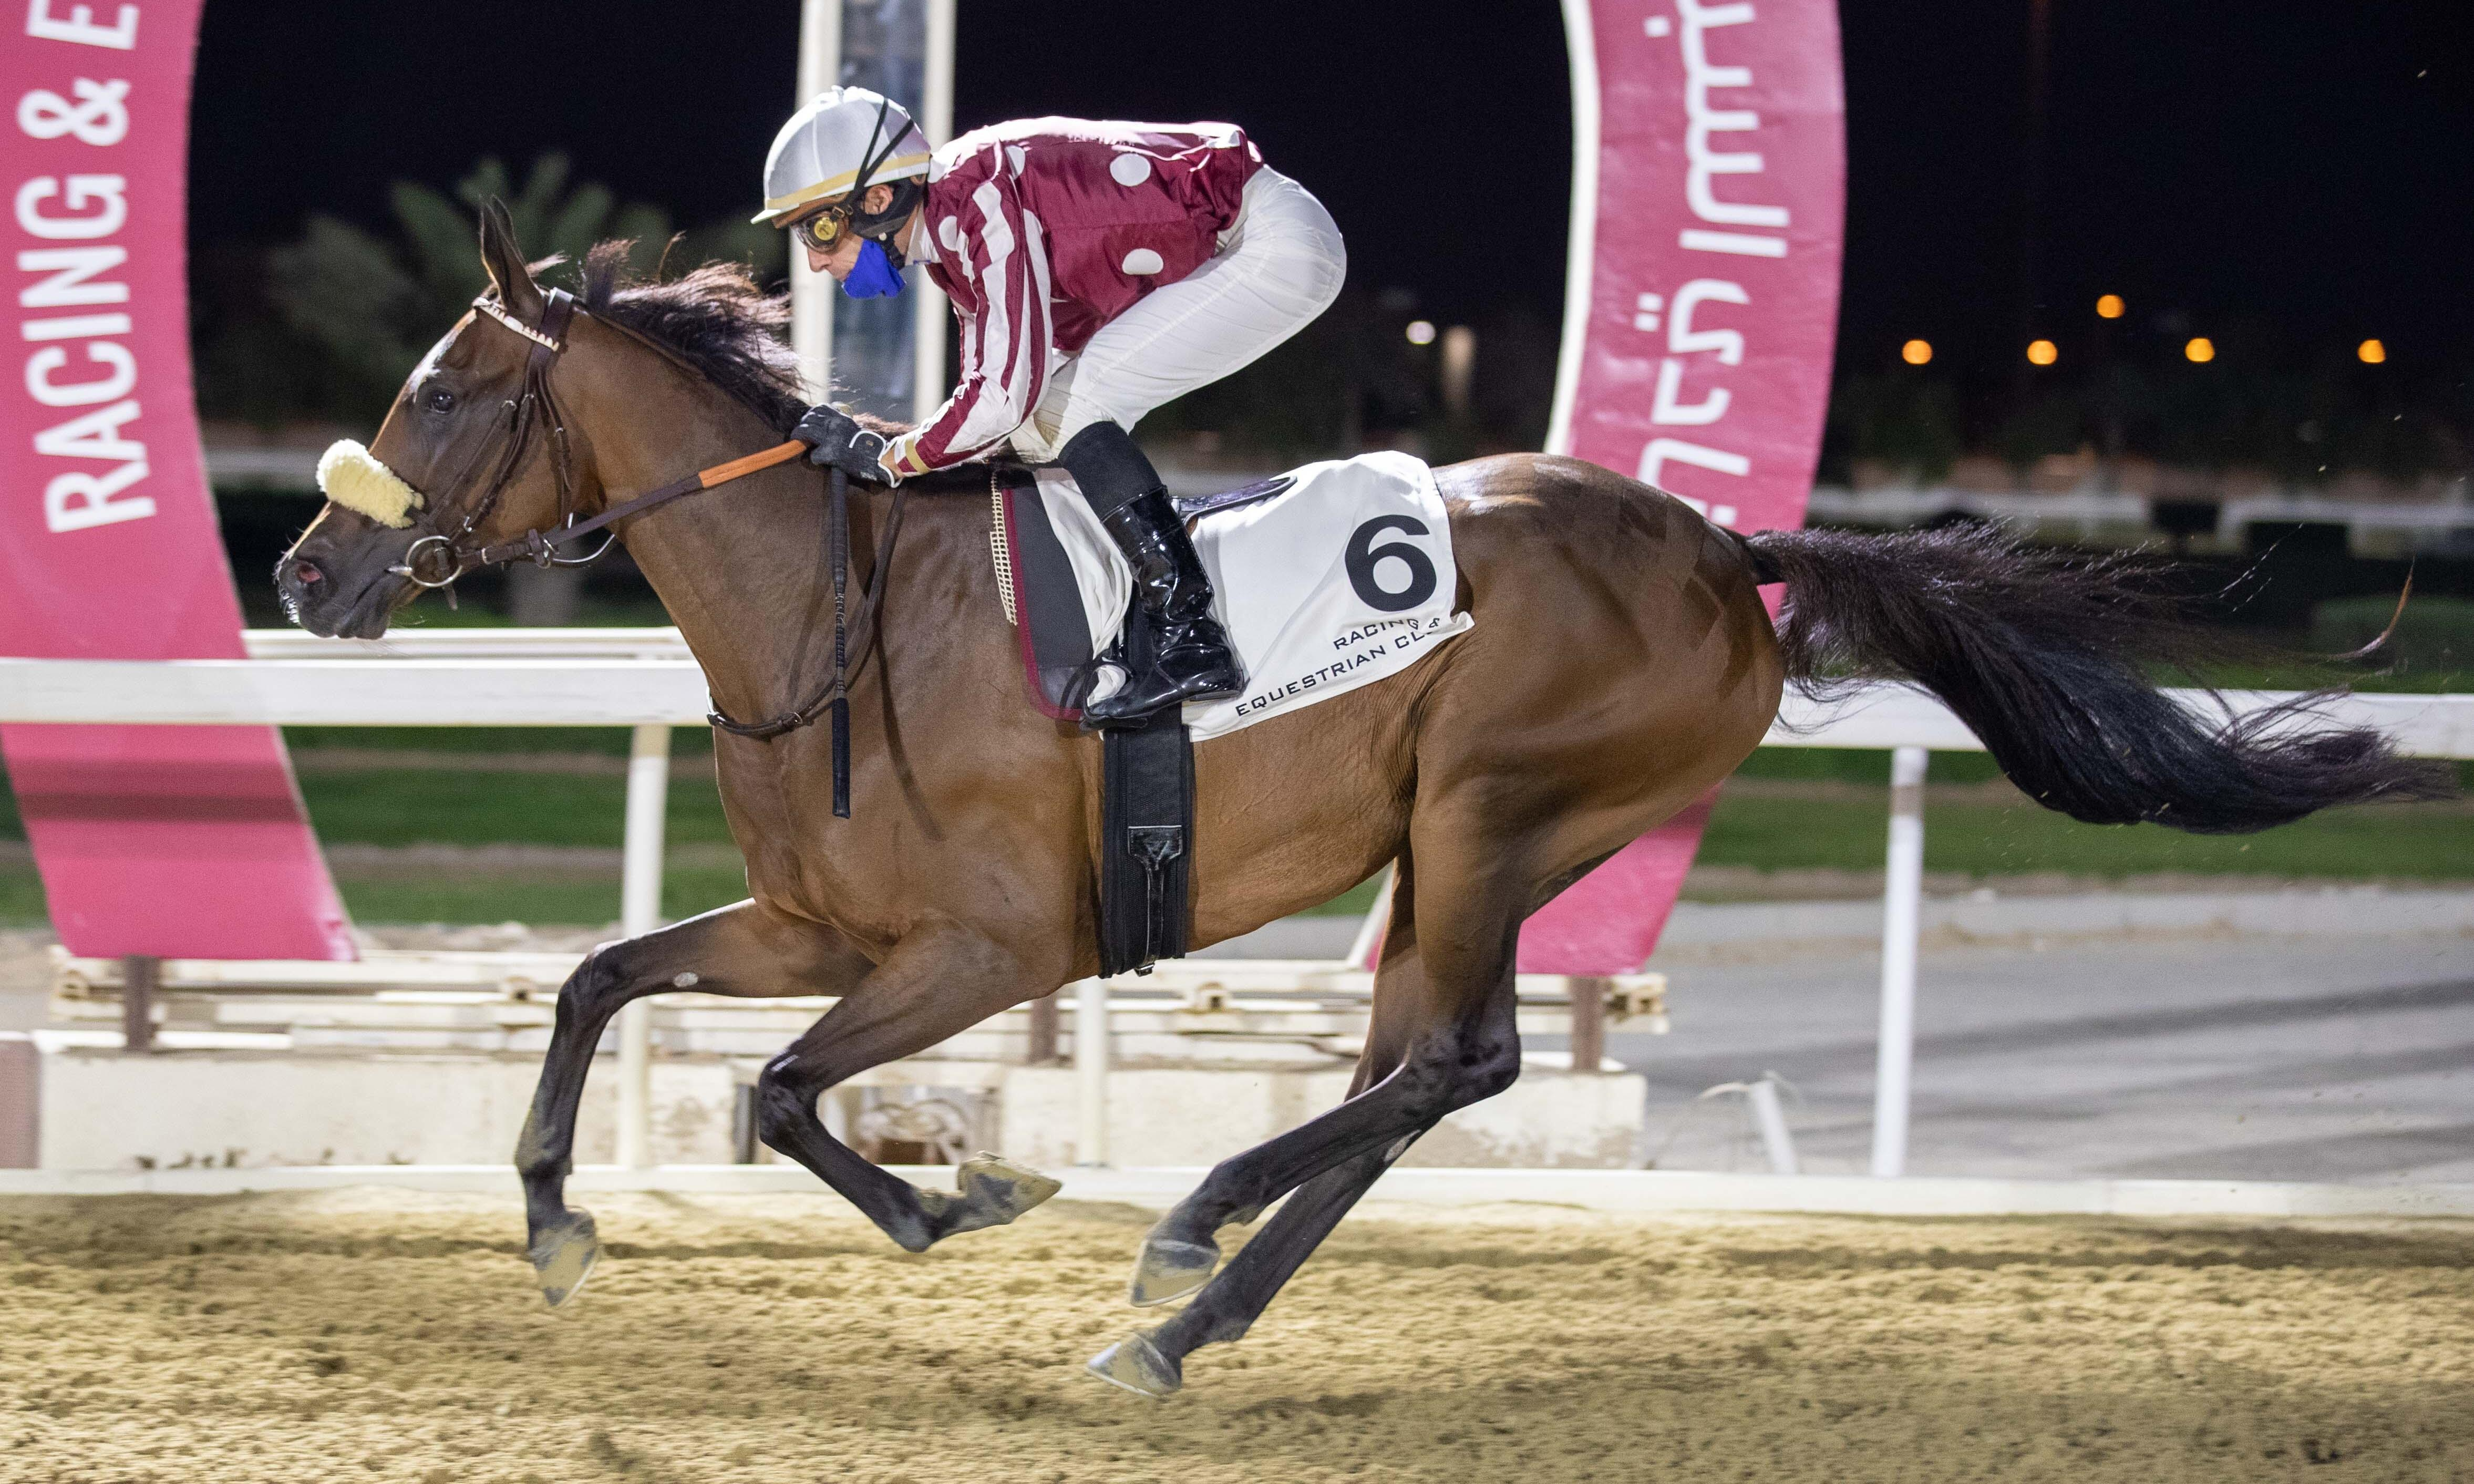 DOUBLE À DOHA POUR LES ELEVES DU HARAS DU GRAND COURGEON